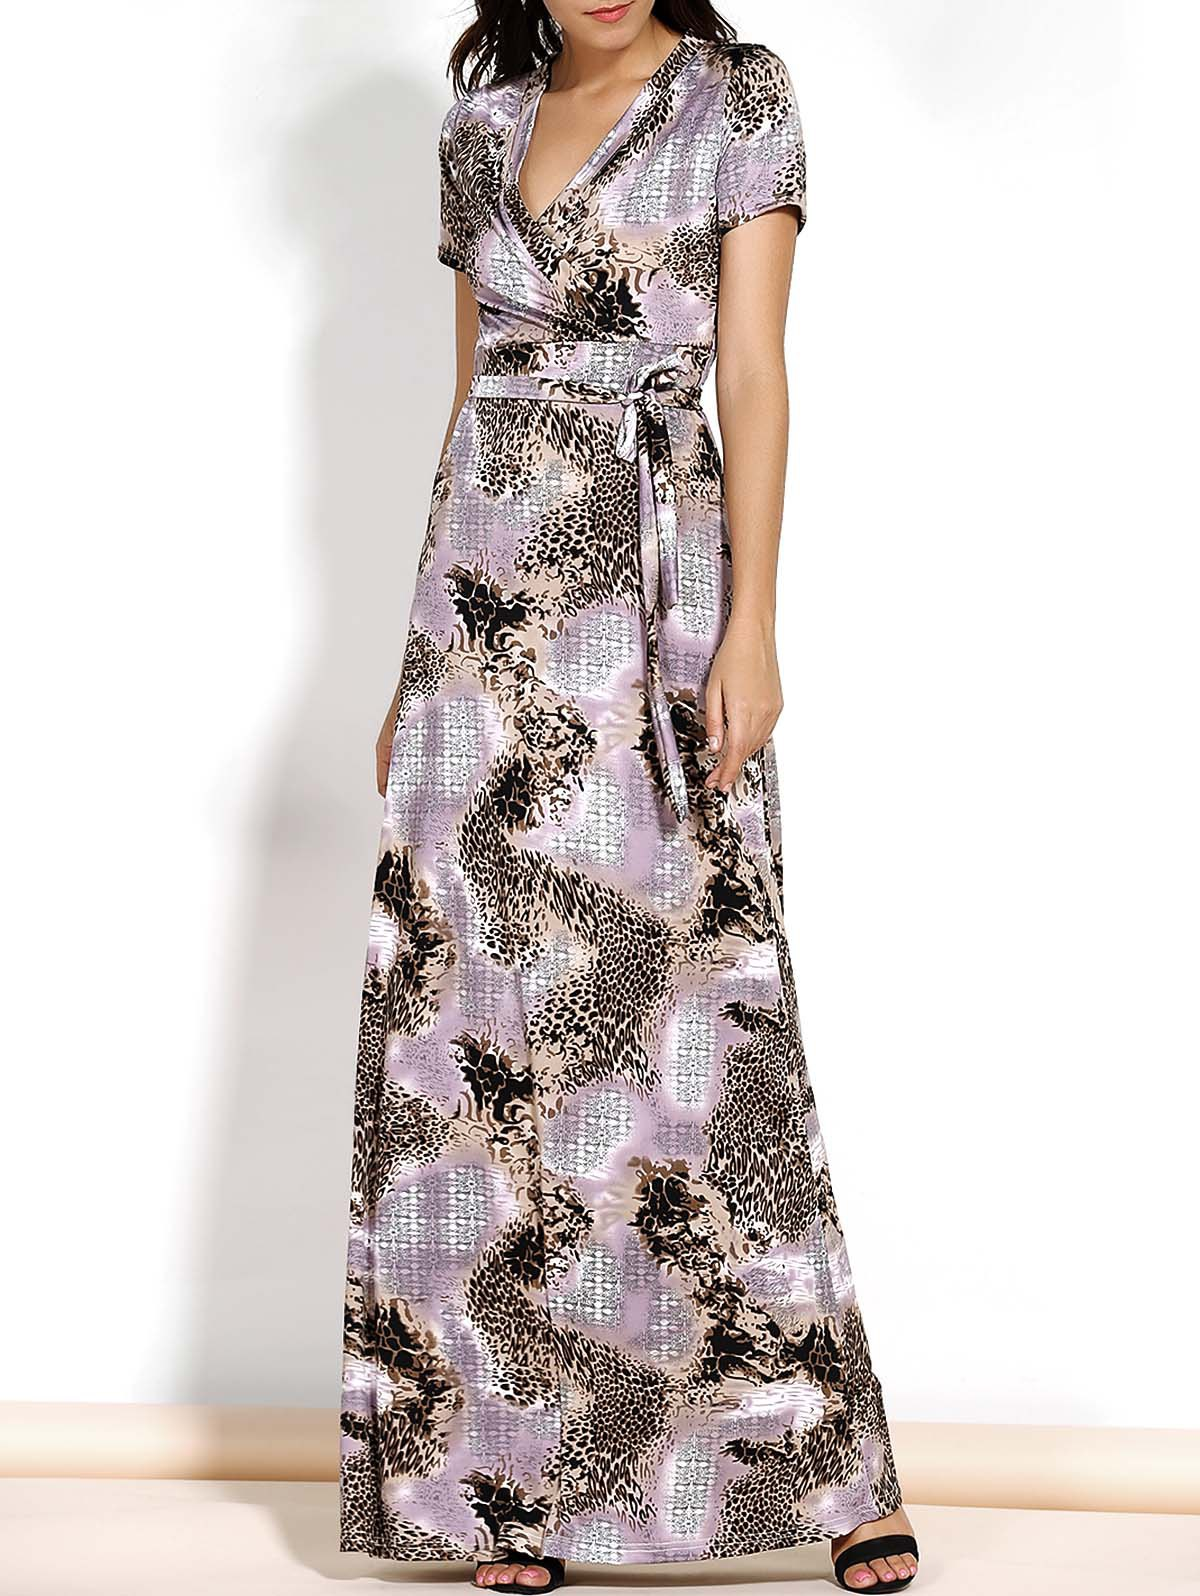 Chic V-Neck Short Sleeve Leopard Print Spliced Belted Maxi Dress Women XL